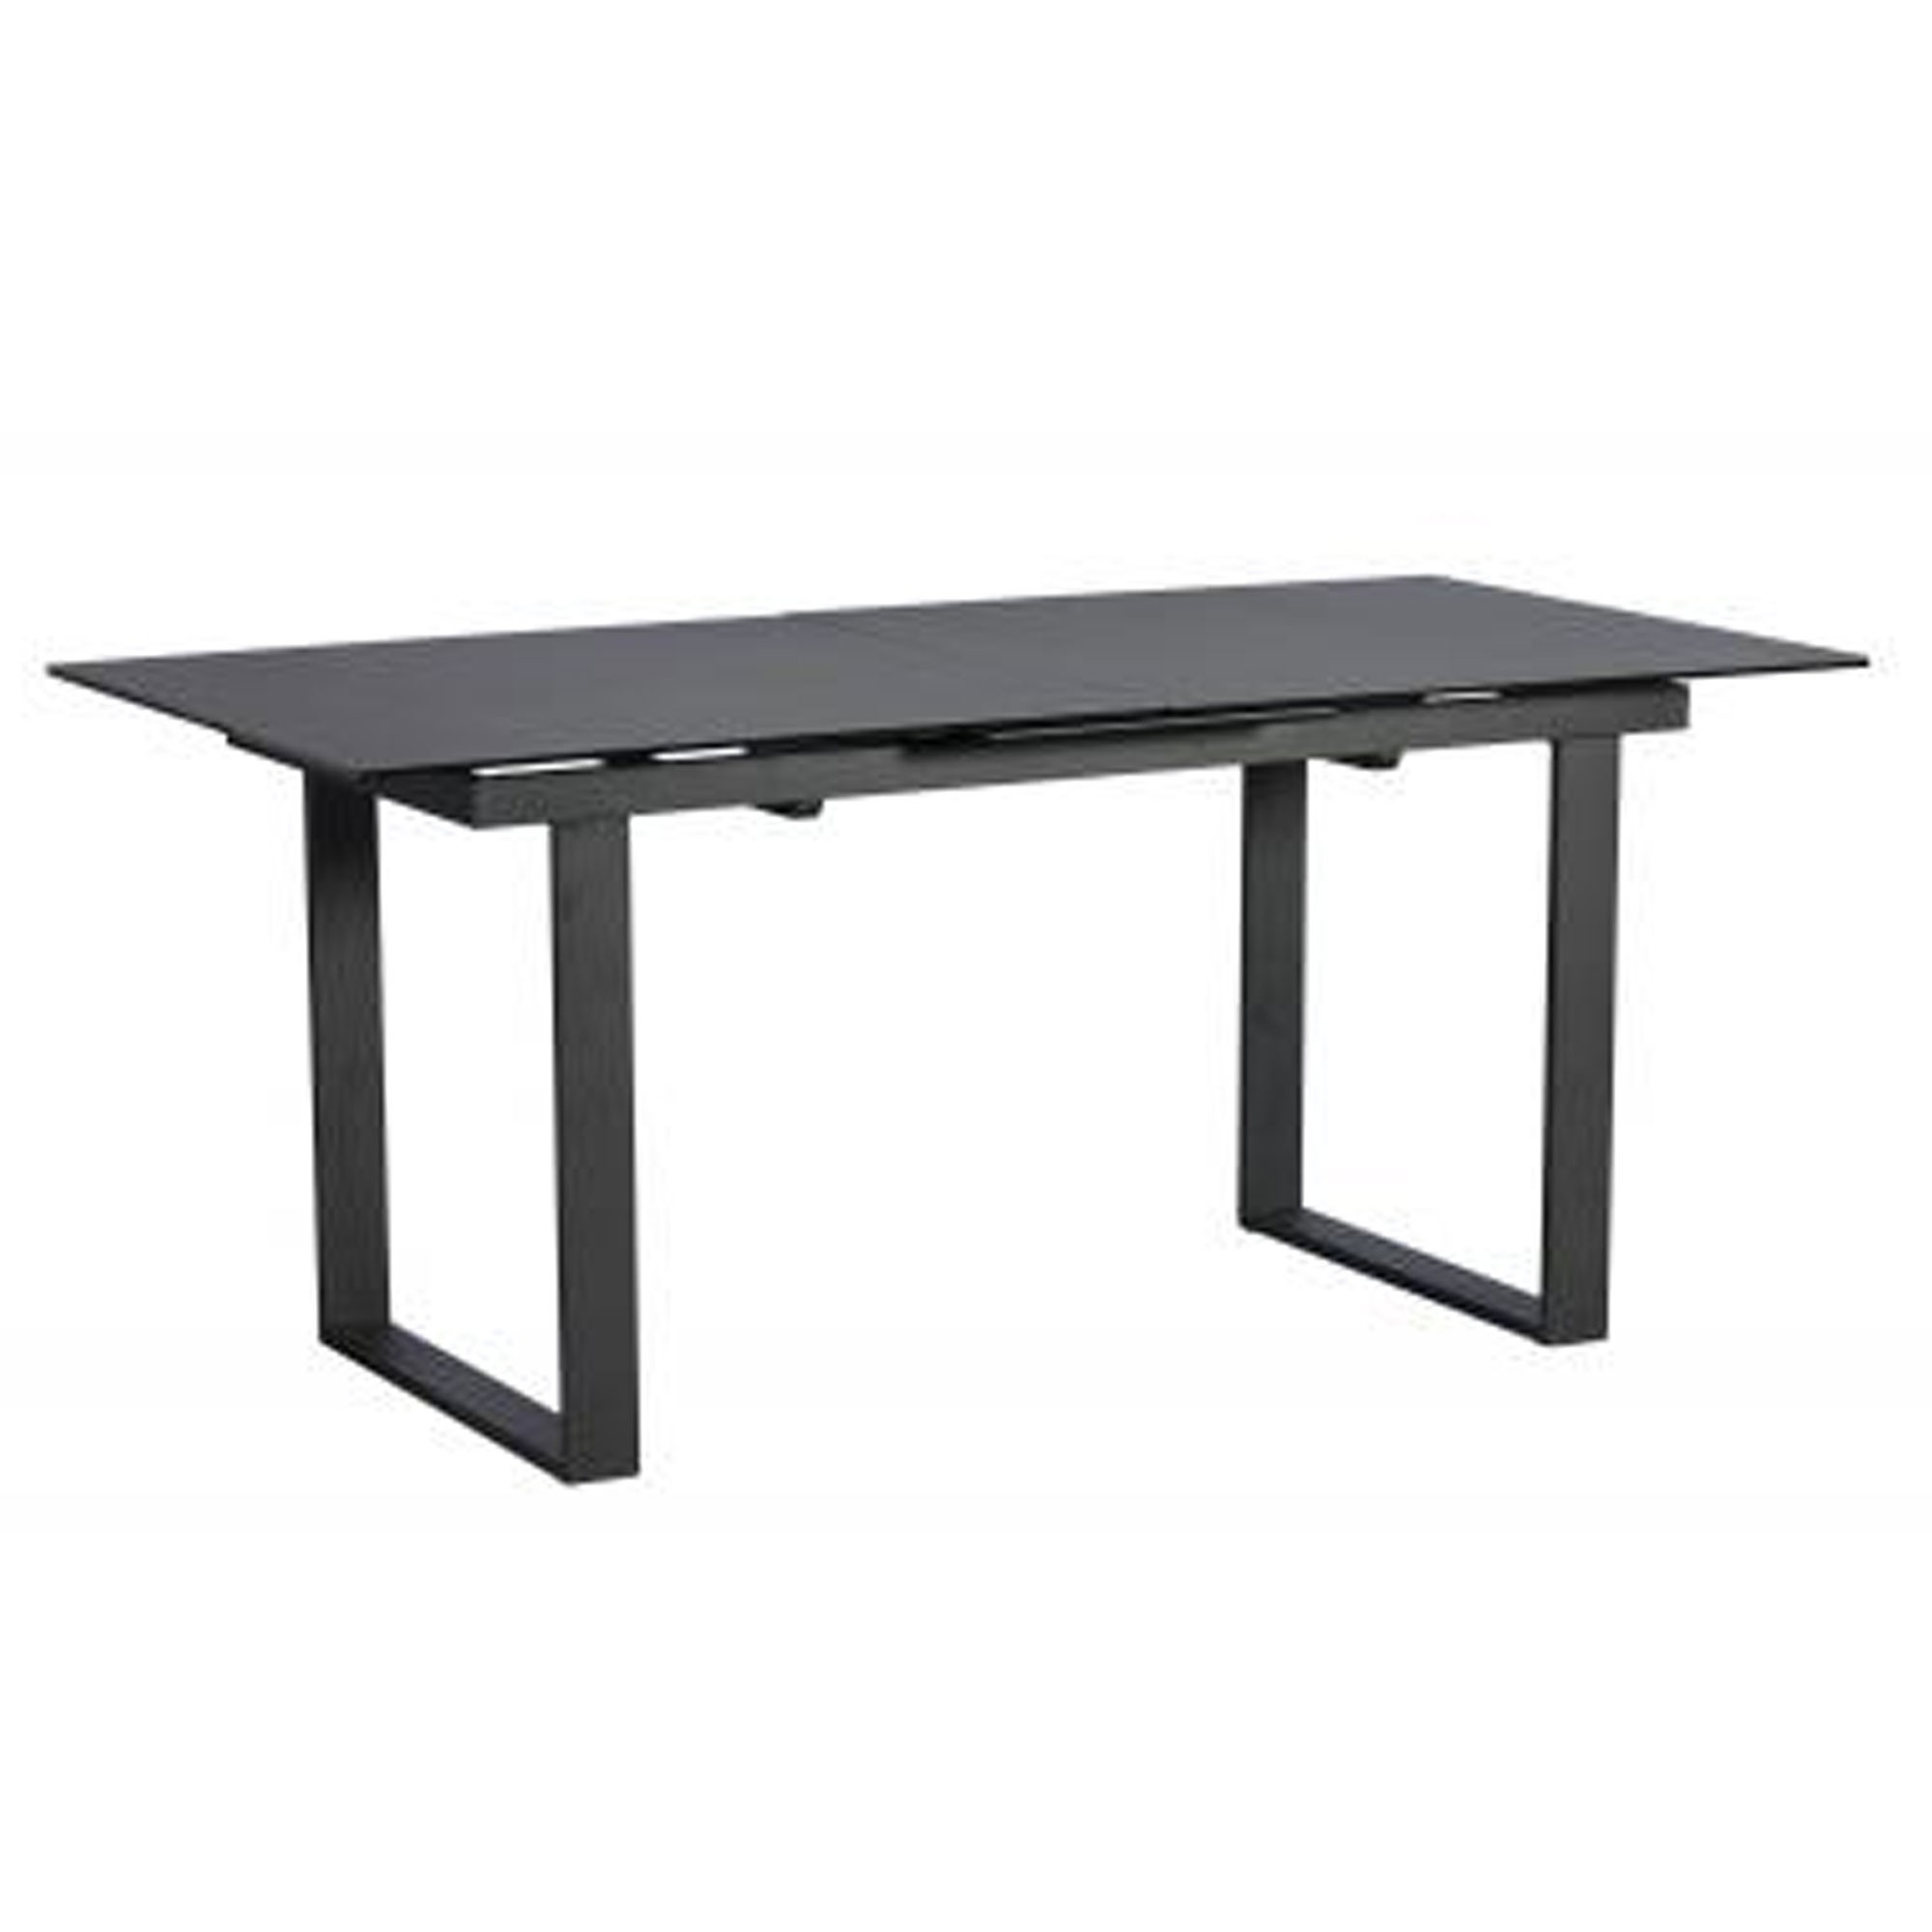 Monaco 176 216Cm Extending Dining Table For Best And Newest Rocco Extension Dining Tables (Image 6 of 20)